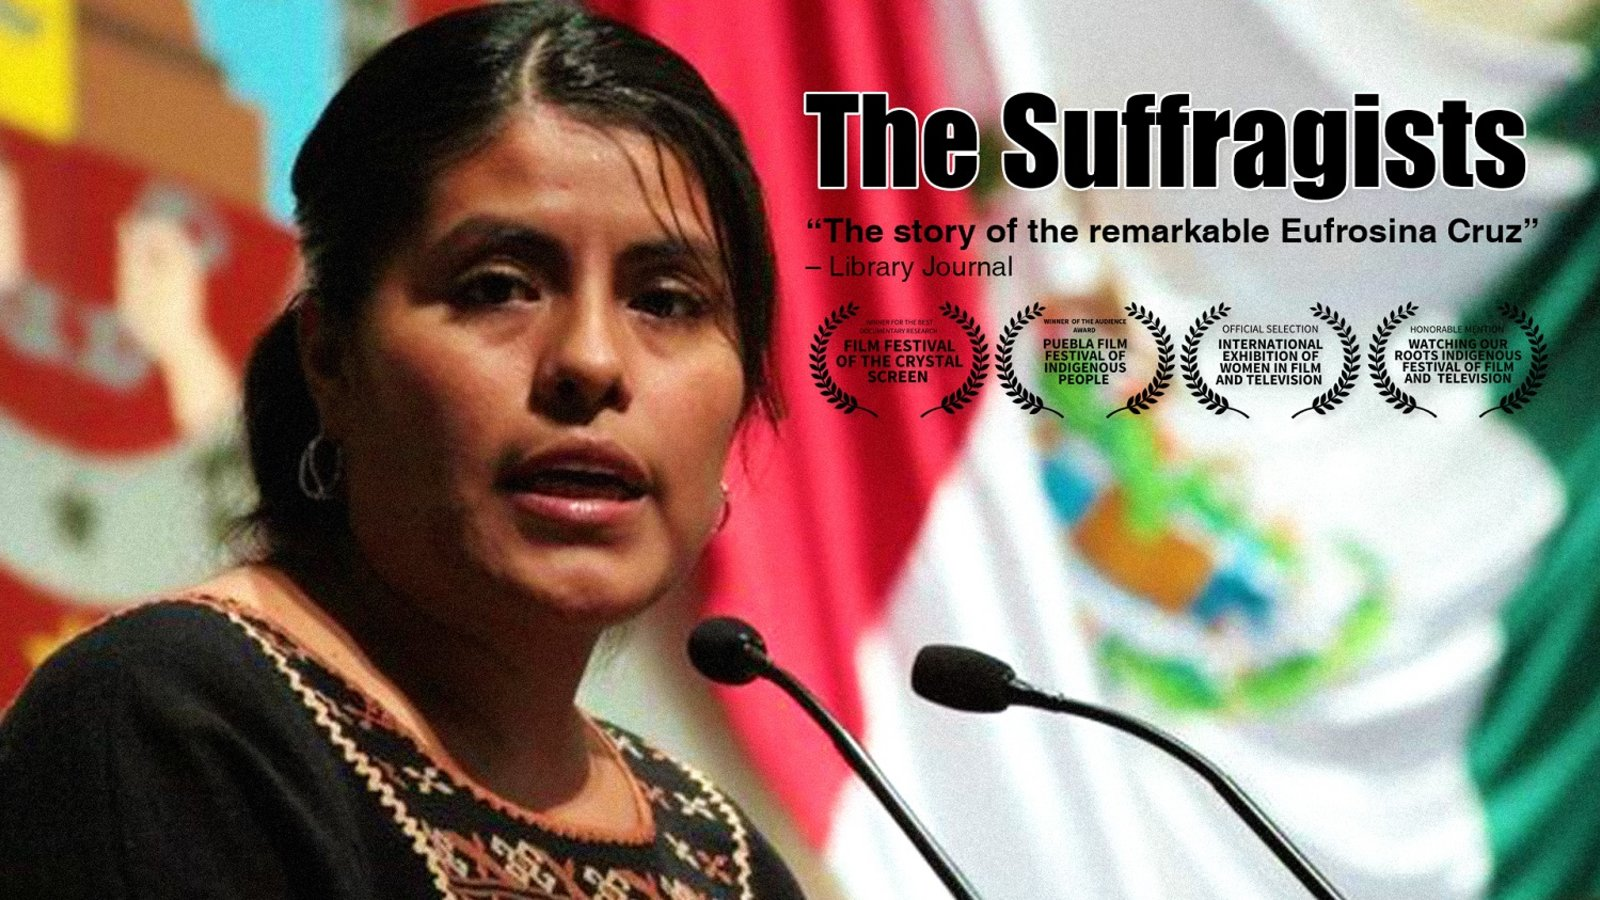 The Suffragists - Political Struggles for Women in Mexico